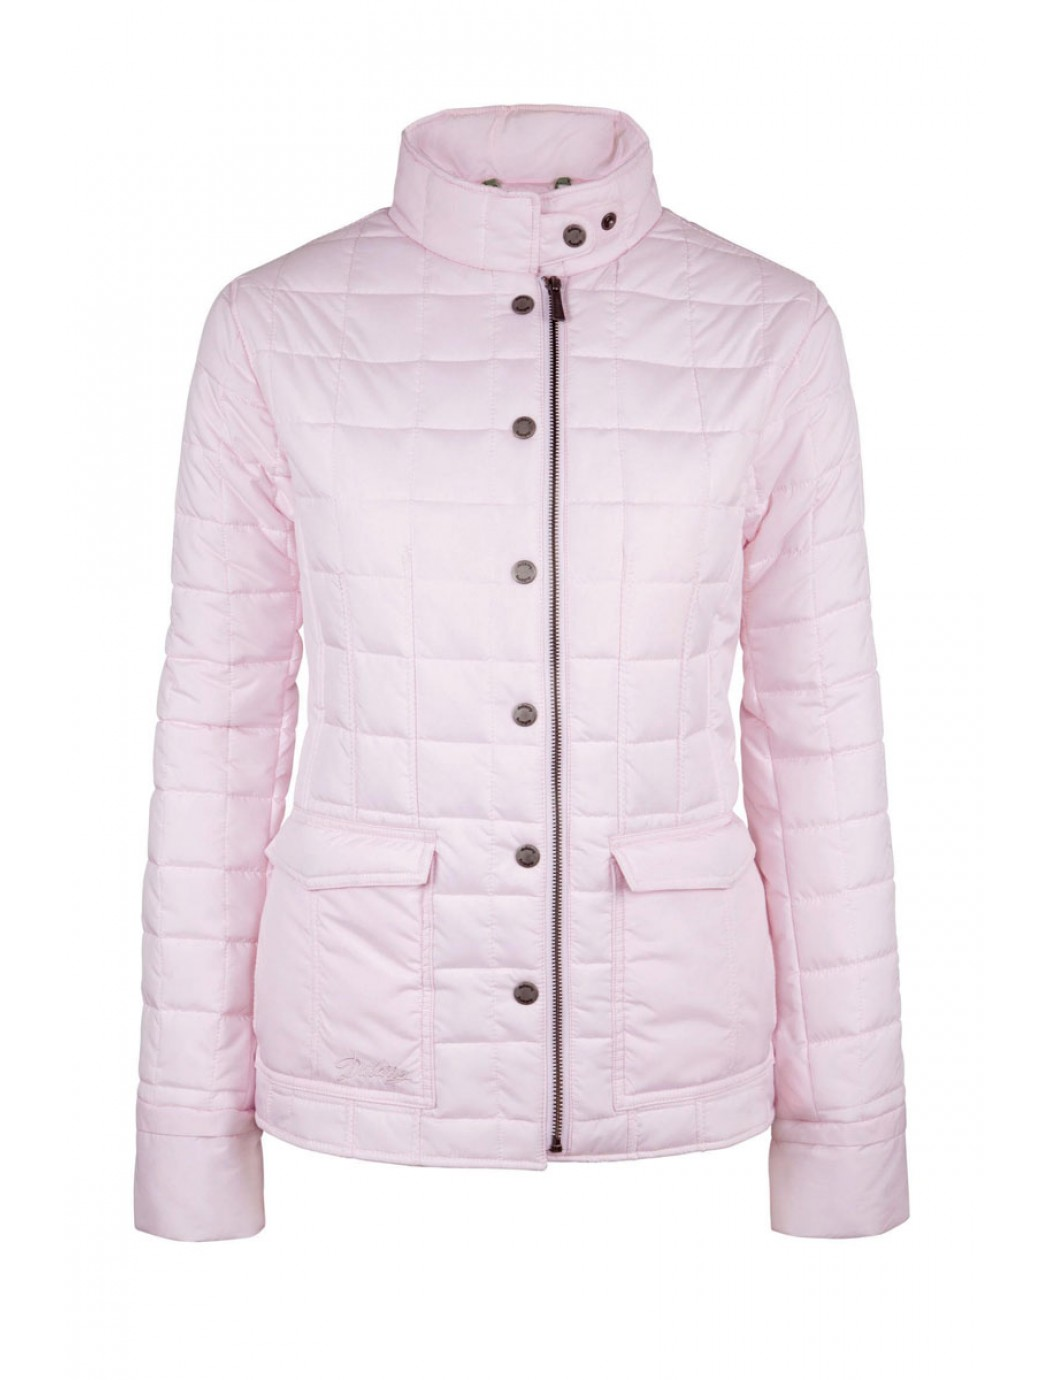 carra-quilt-jacket-blush-dubarry-1 1 1